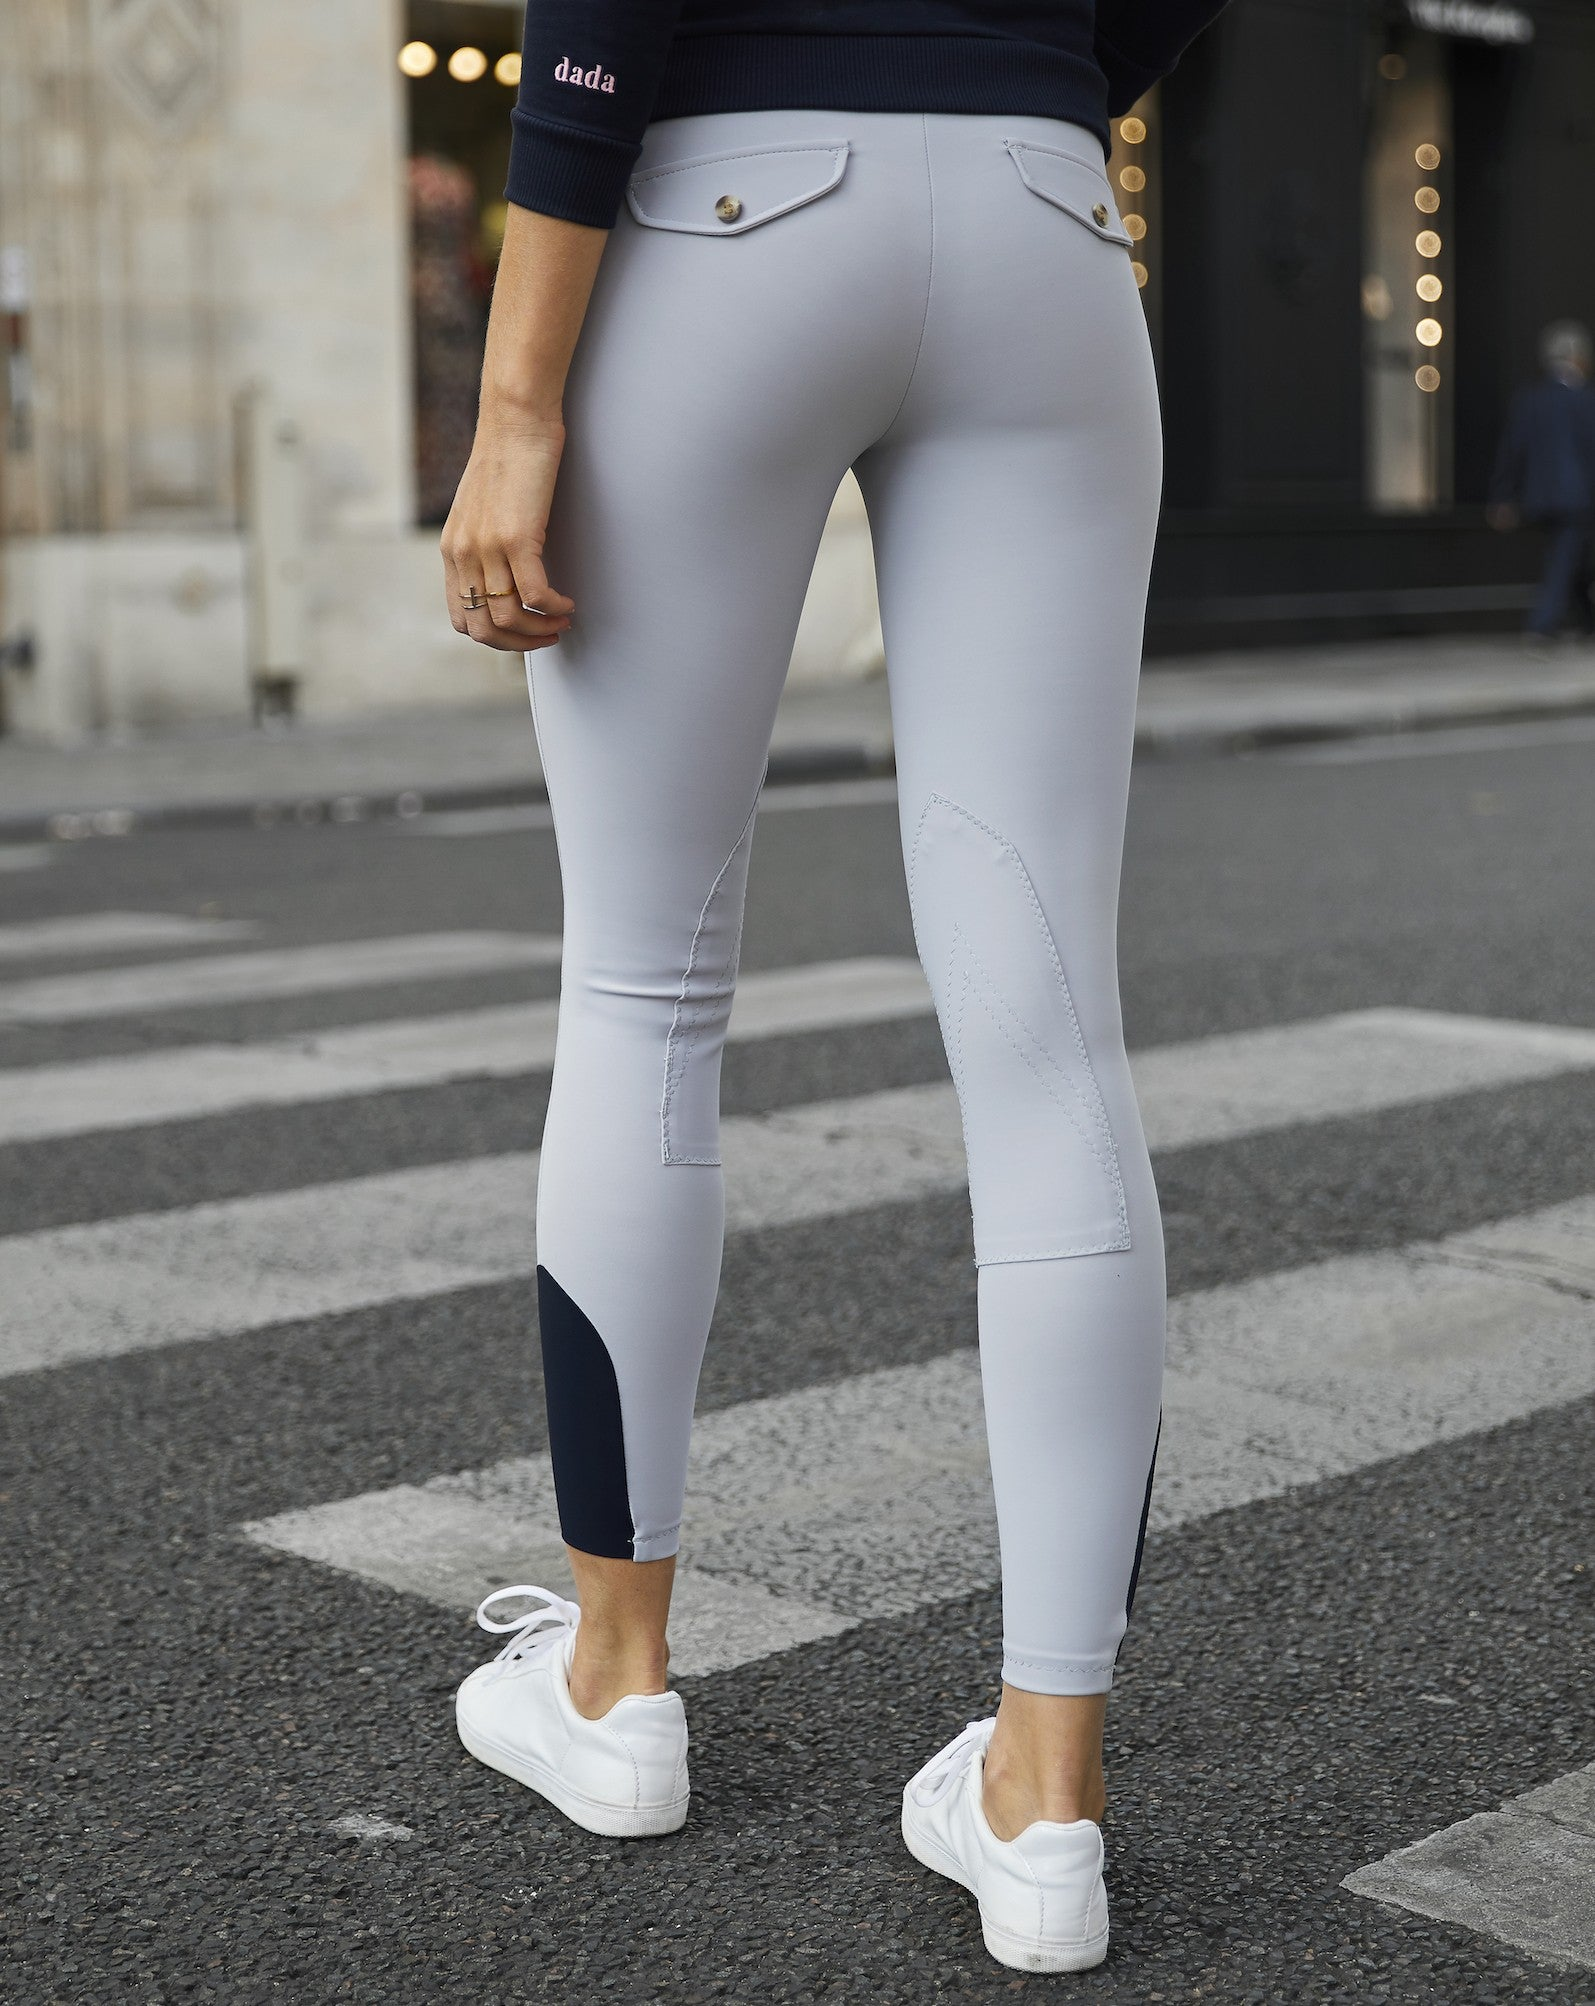 Dada Sport Giovani Breeches- Dove Grey